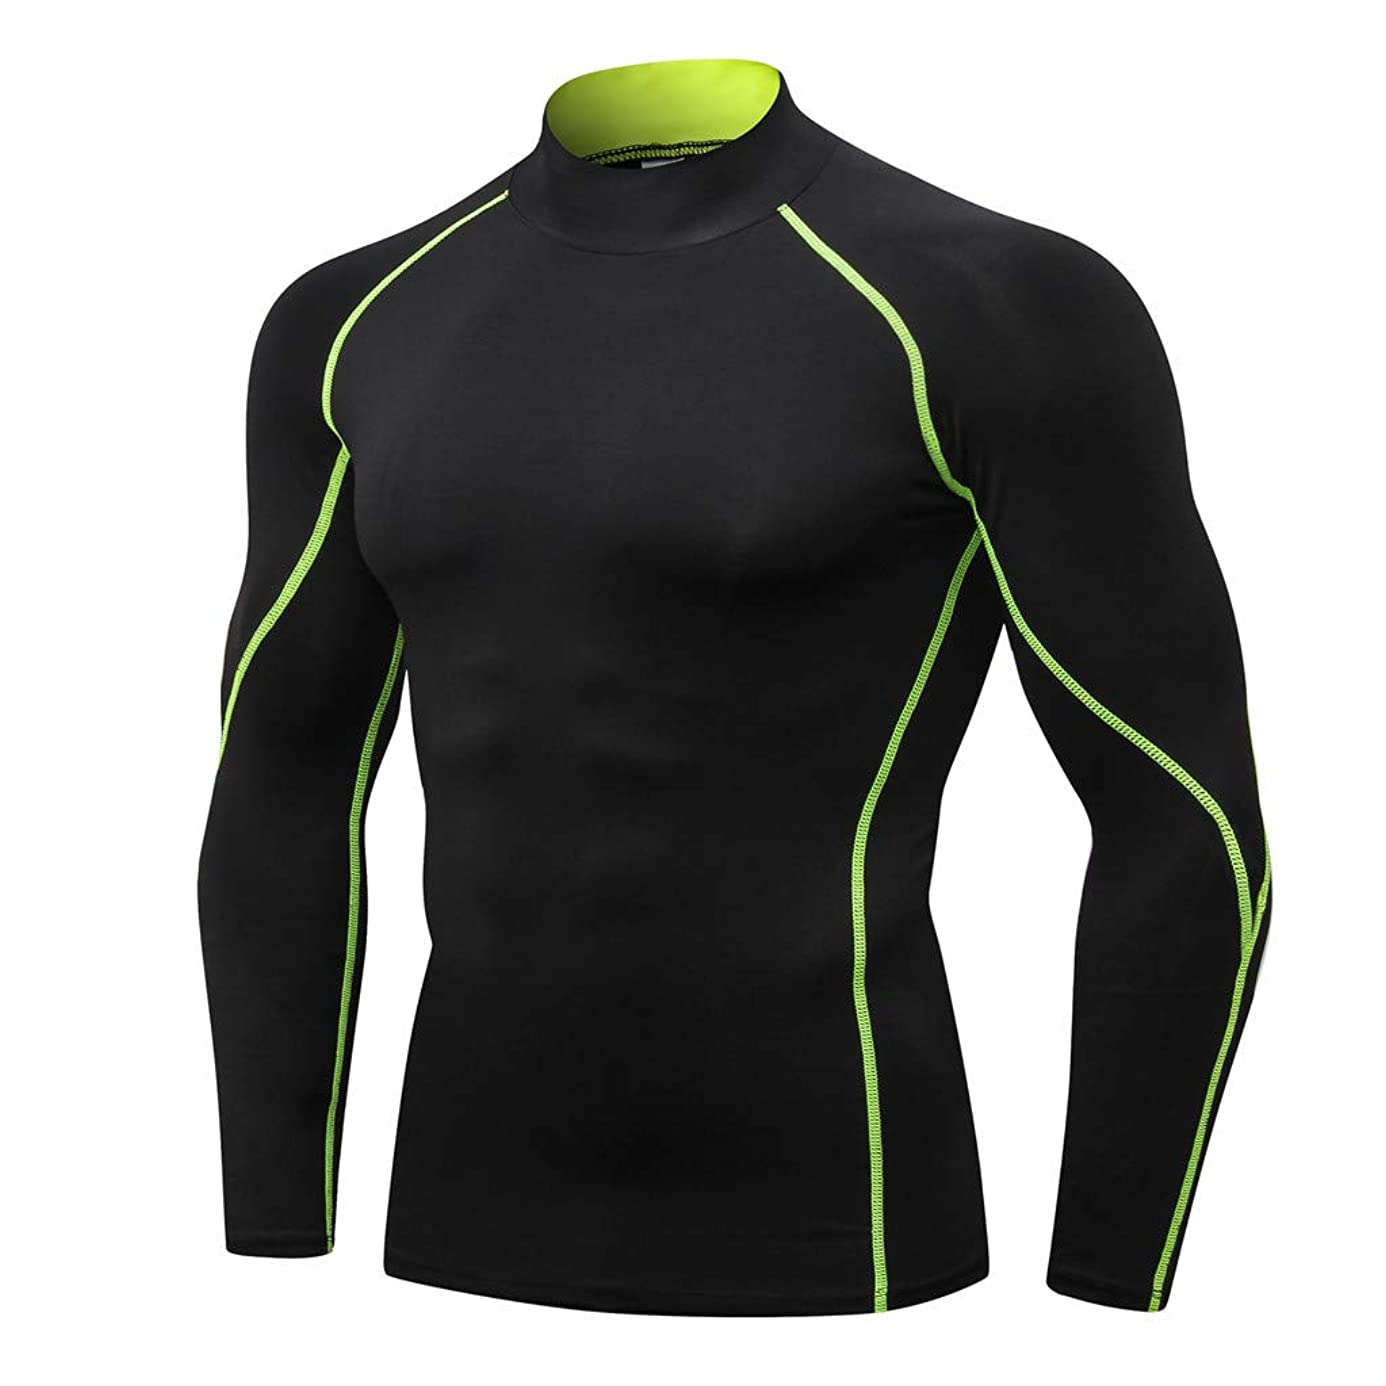 Men's Compression Shirts,Sunyastor Fitness Sports Shirt Long-Sleeve T-Shirts Workout Tee Gym Training Bodybuilding Skin Top